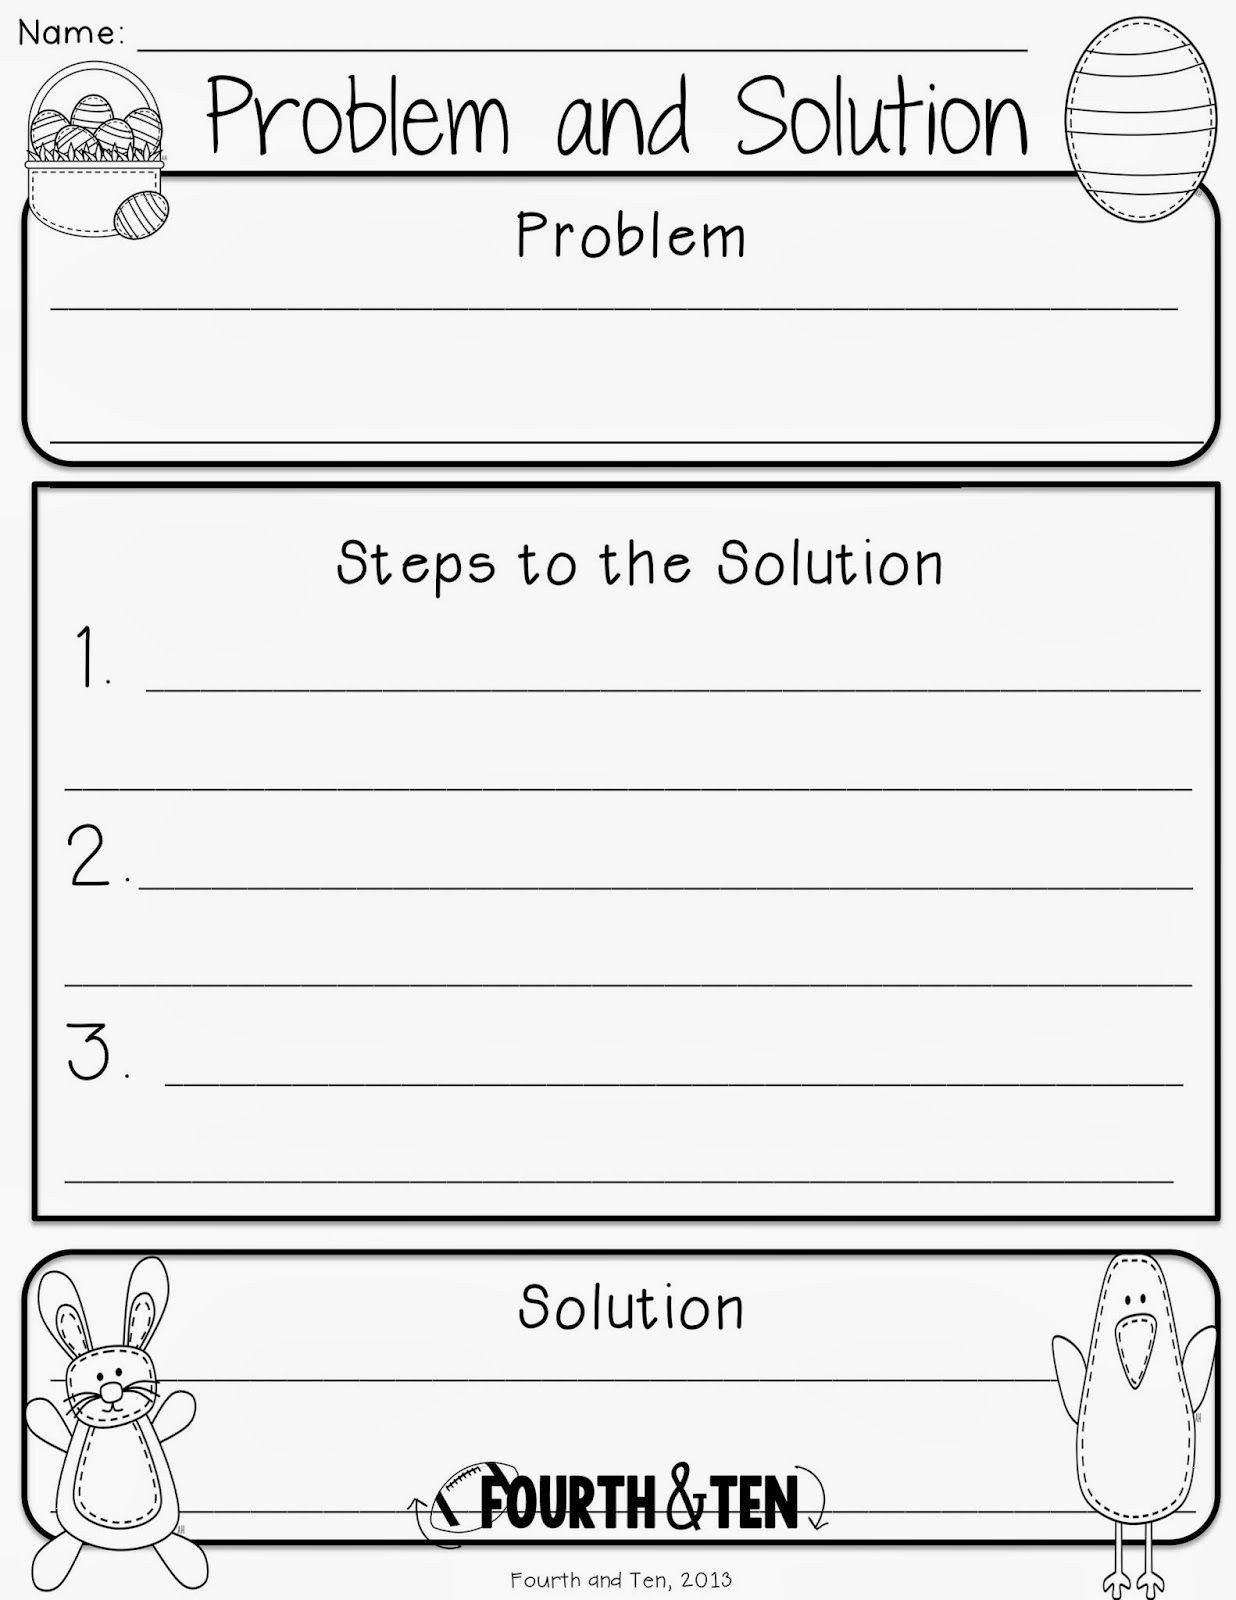 Problem And Solution Worksheet Easter Graphic Organizers Reading Writing Problem In 2020 Problem And Solution Graphic Organizers Reading Worksheets